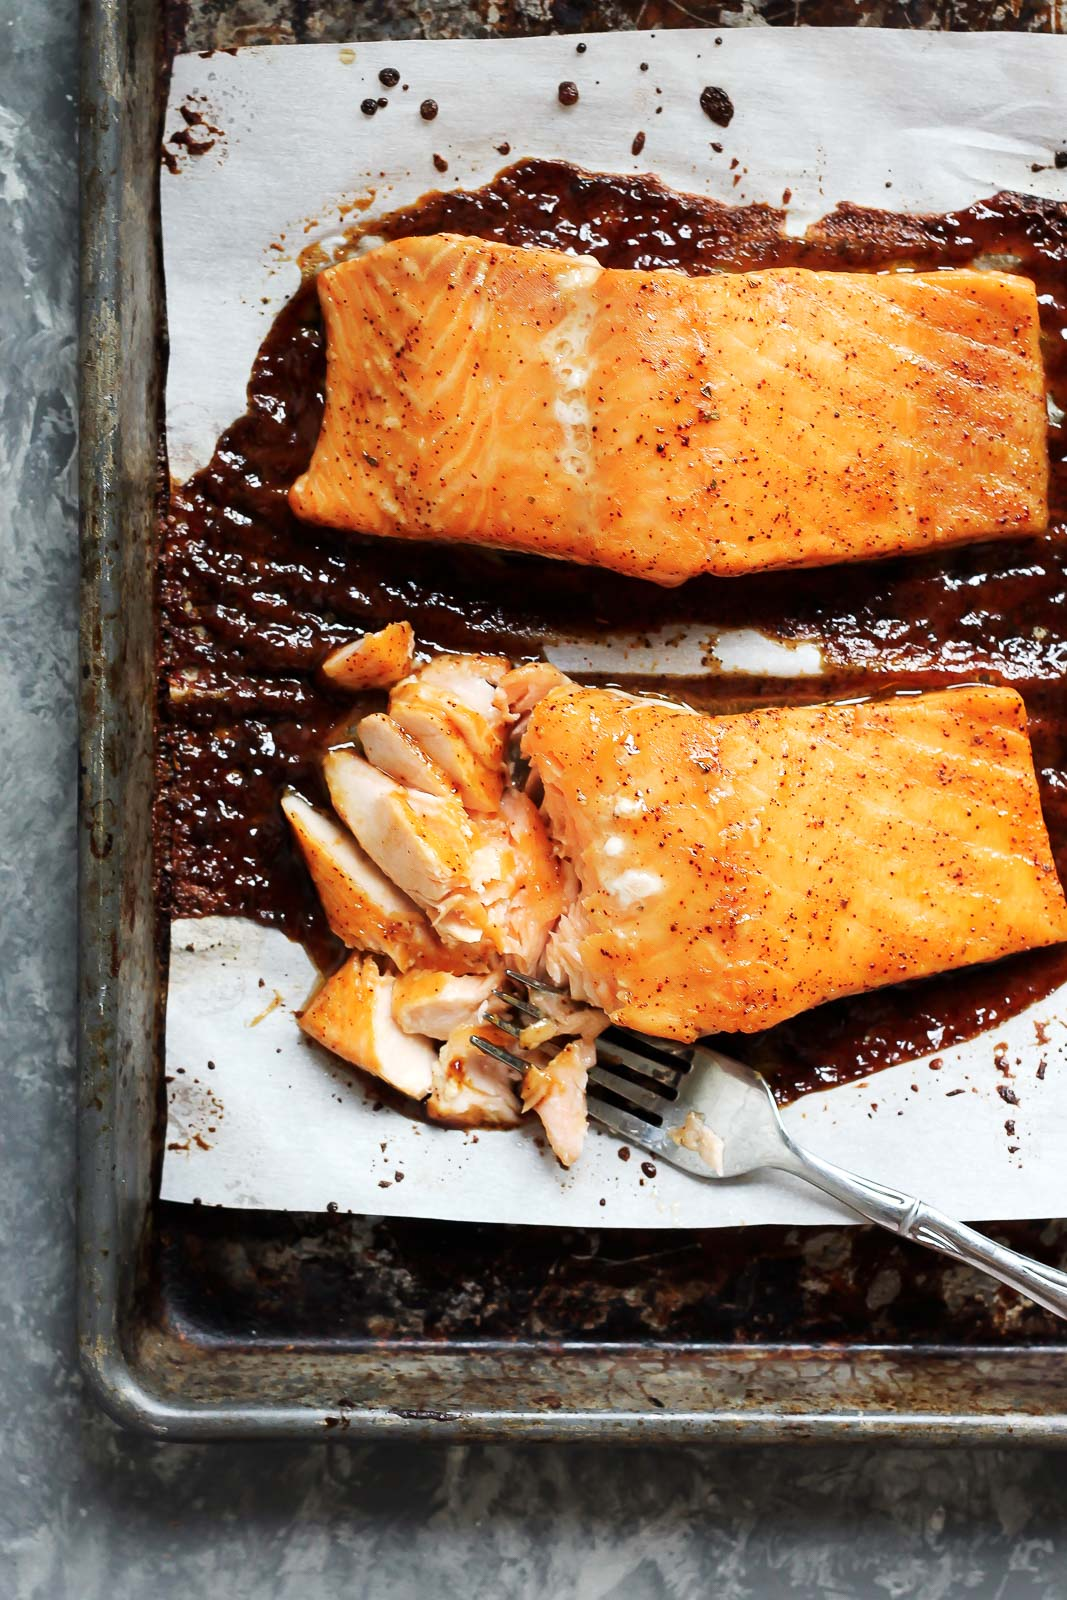 Two pieces of salmon on a baking sheet with a fork